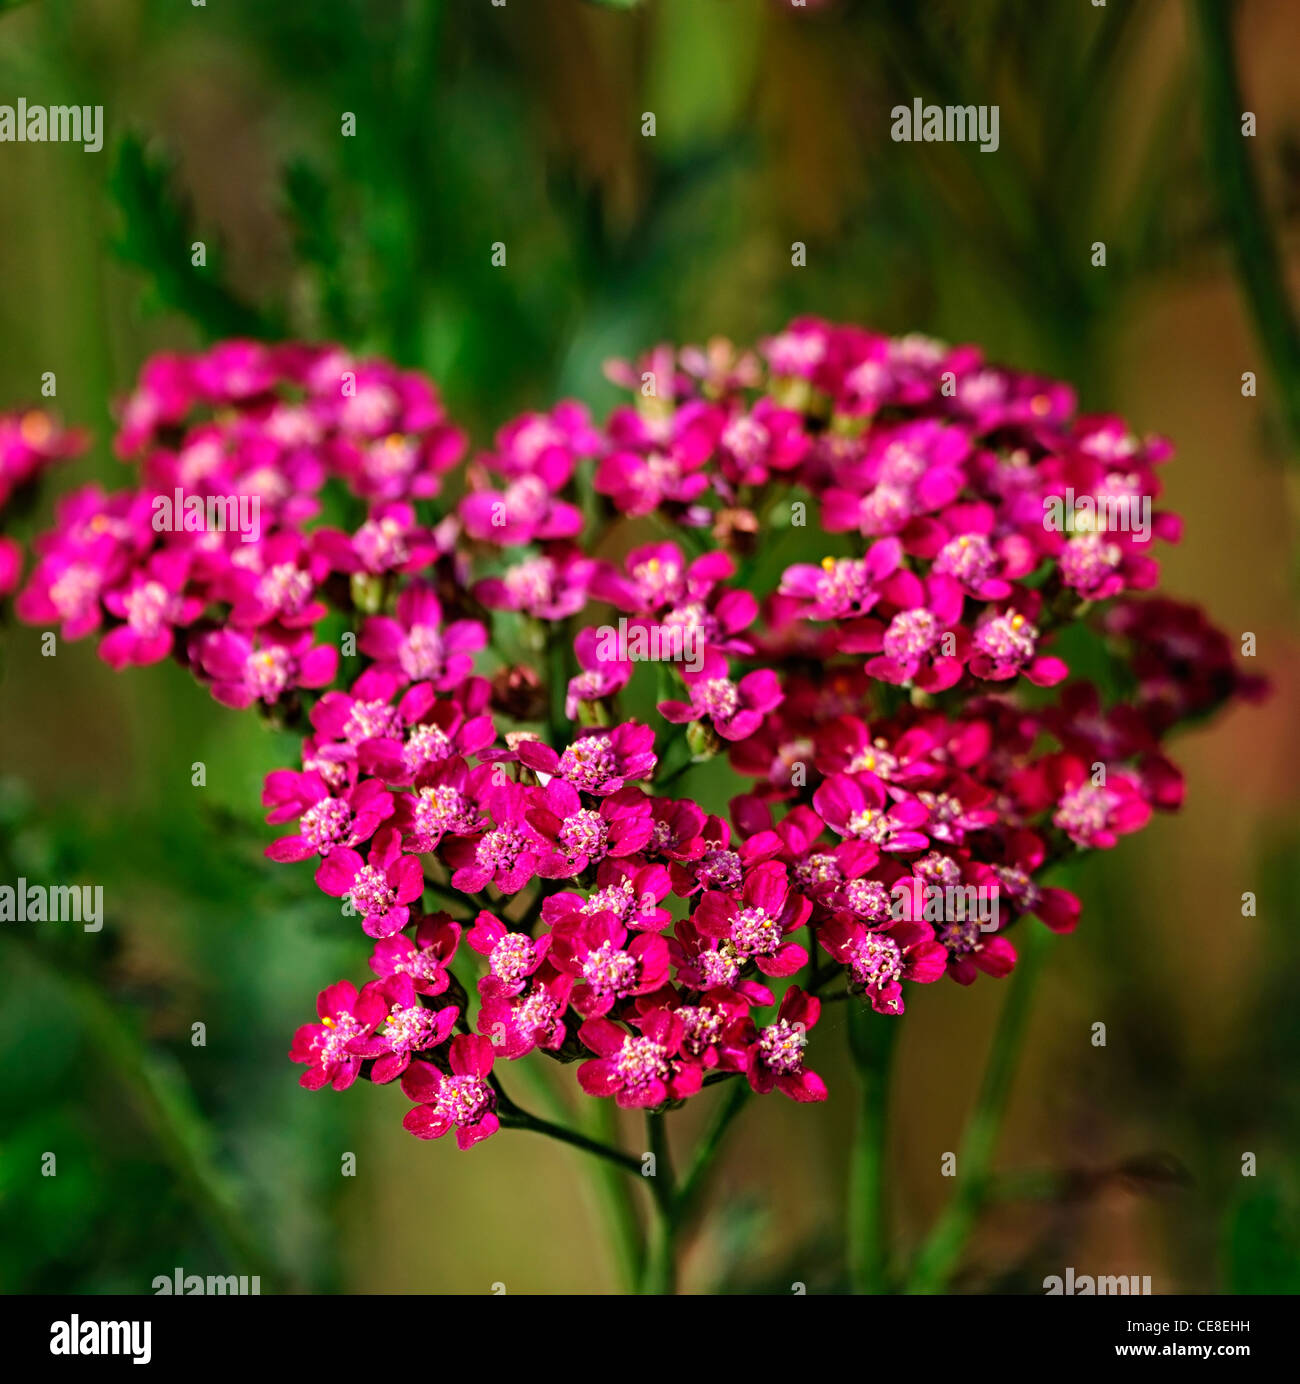 Cerise Pink Flowers Stock Photos Cerise Pink Flowers Stock Images